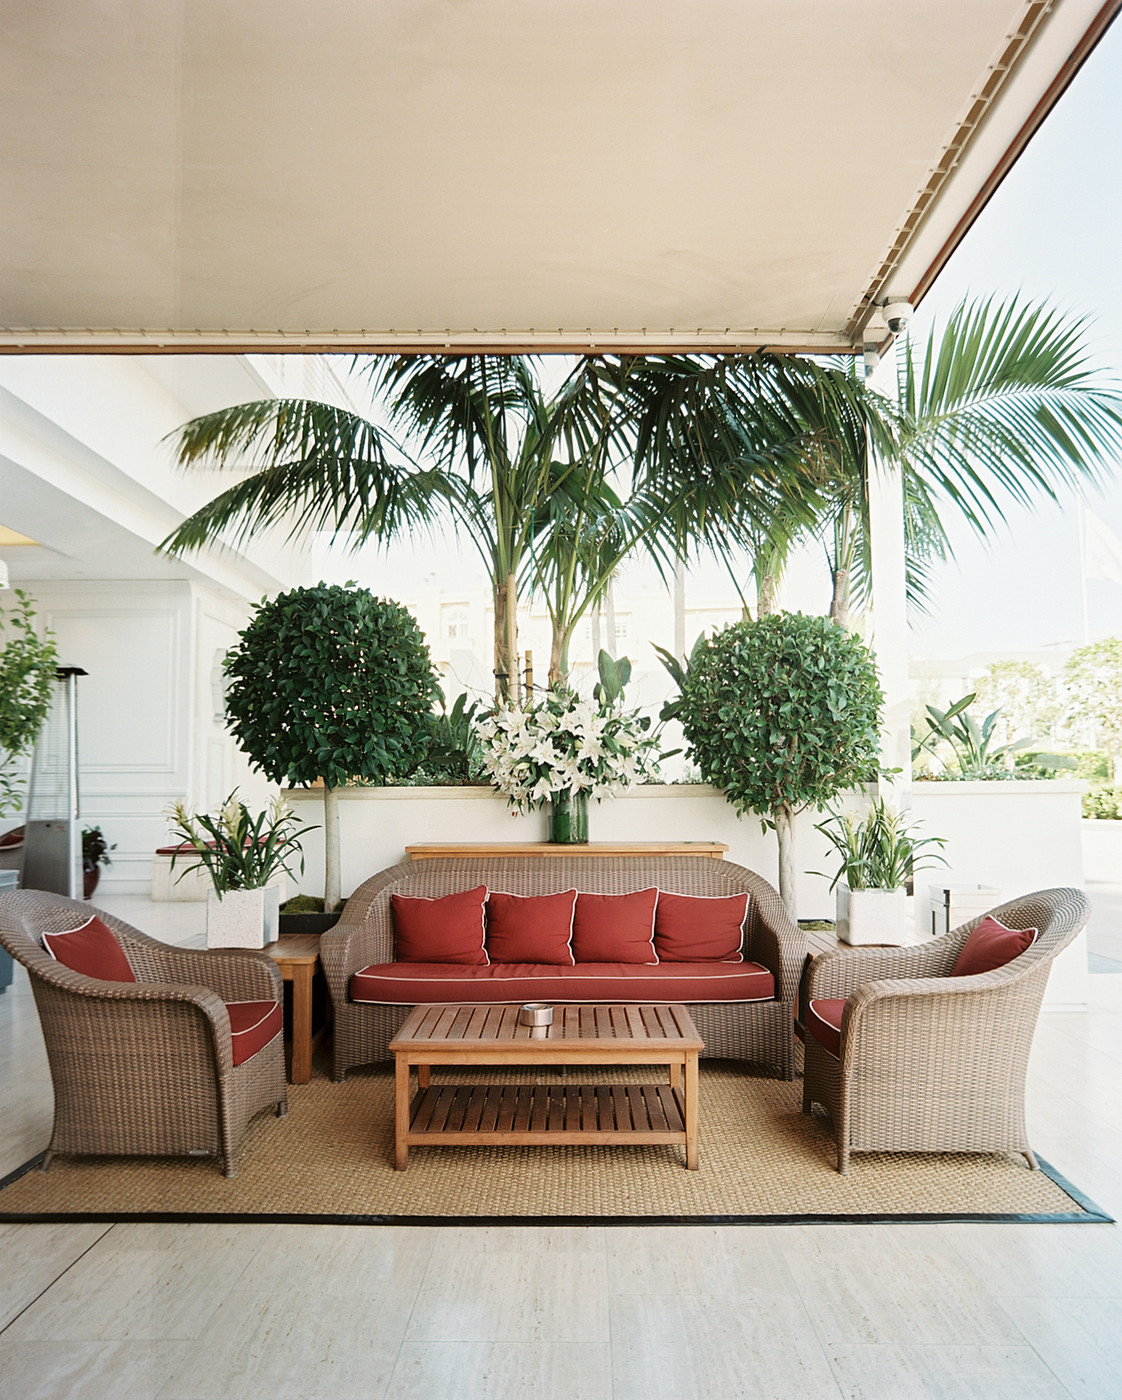 Outdoor living area with matching topiaries